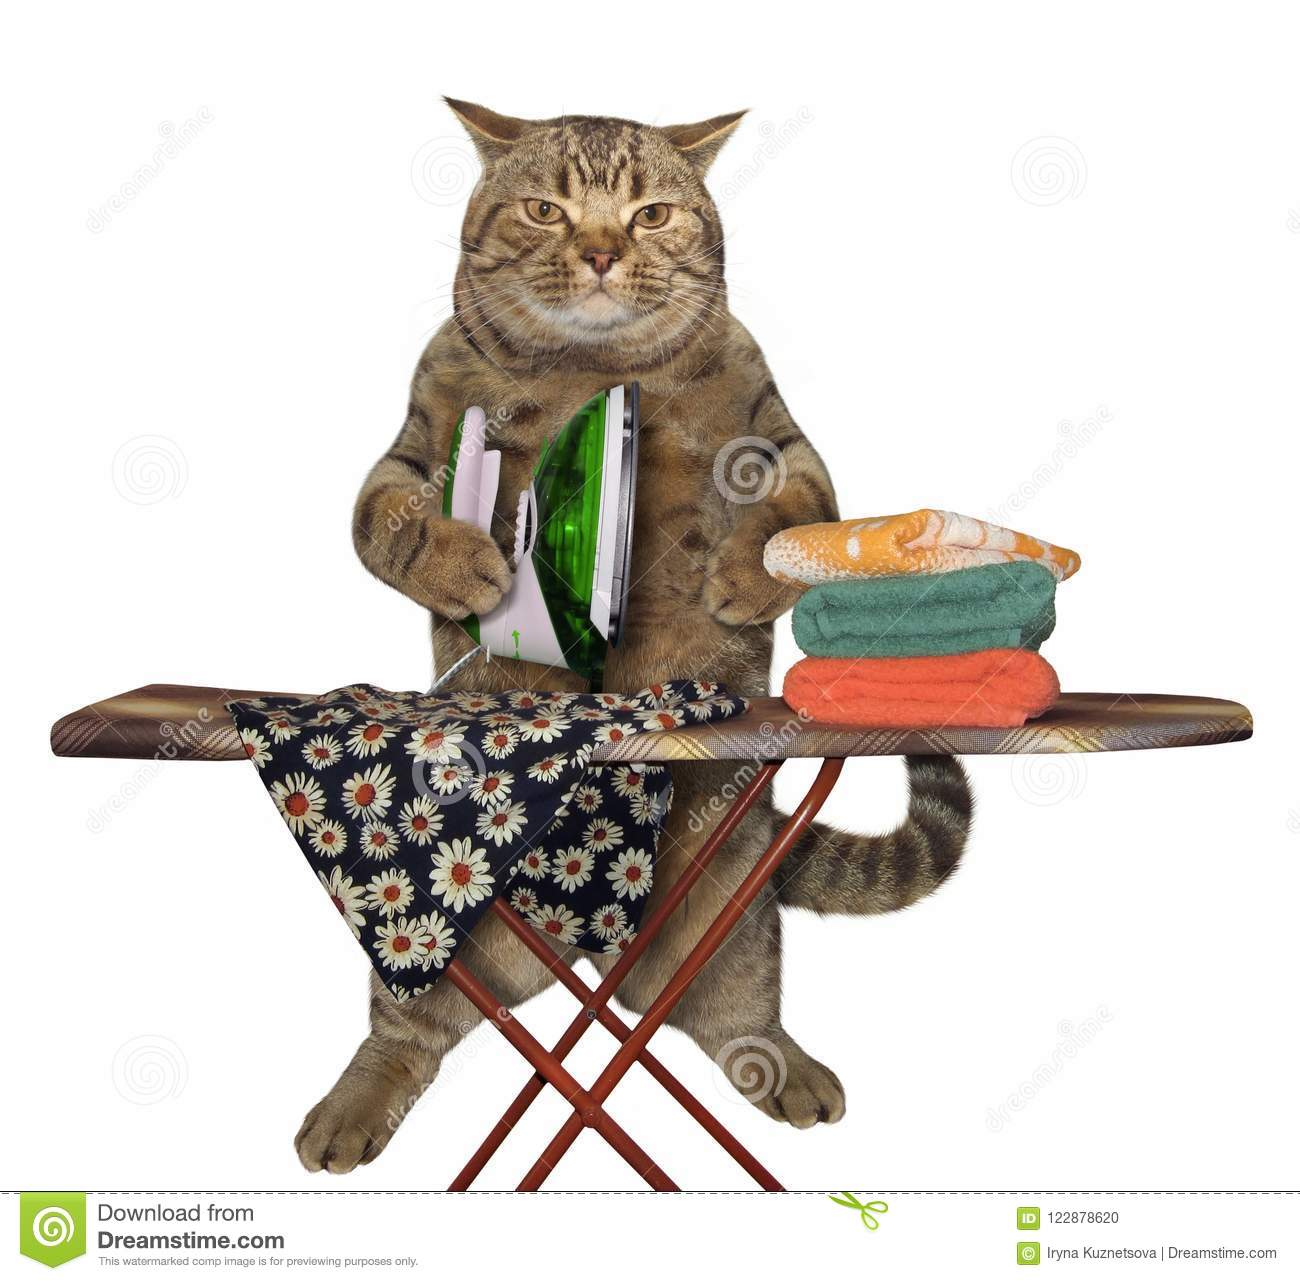 Cat is ironing clothes